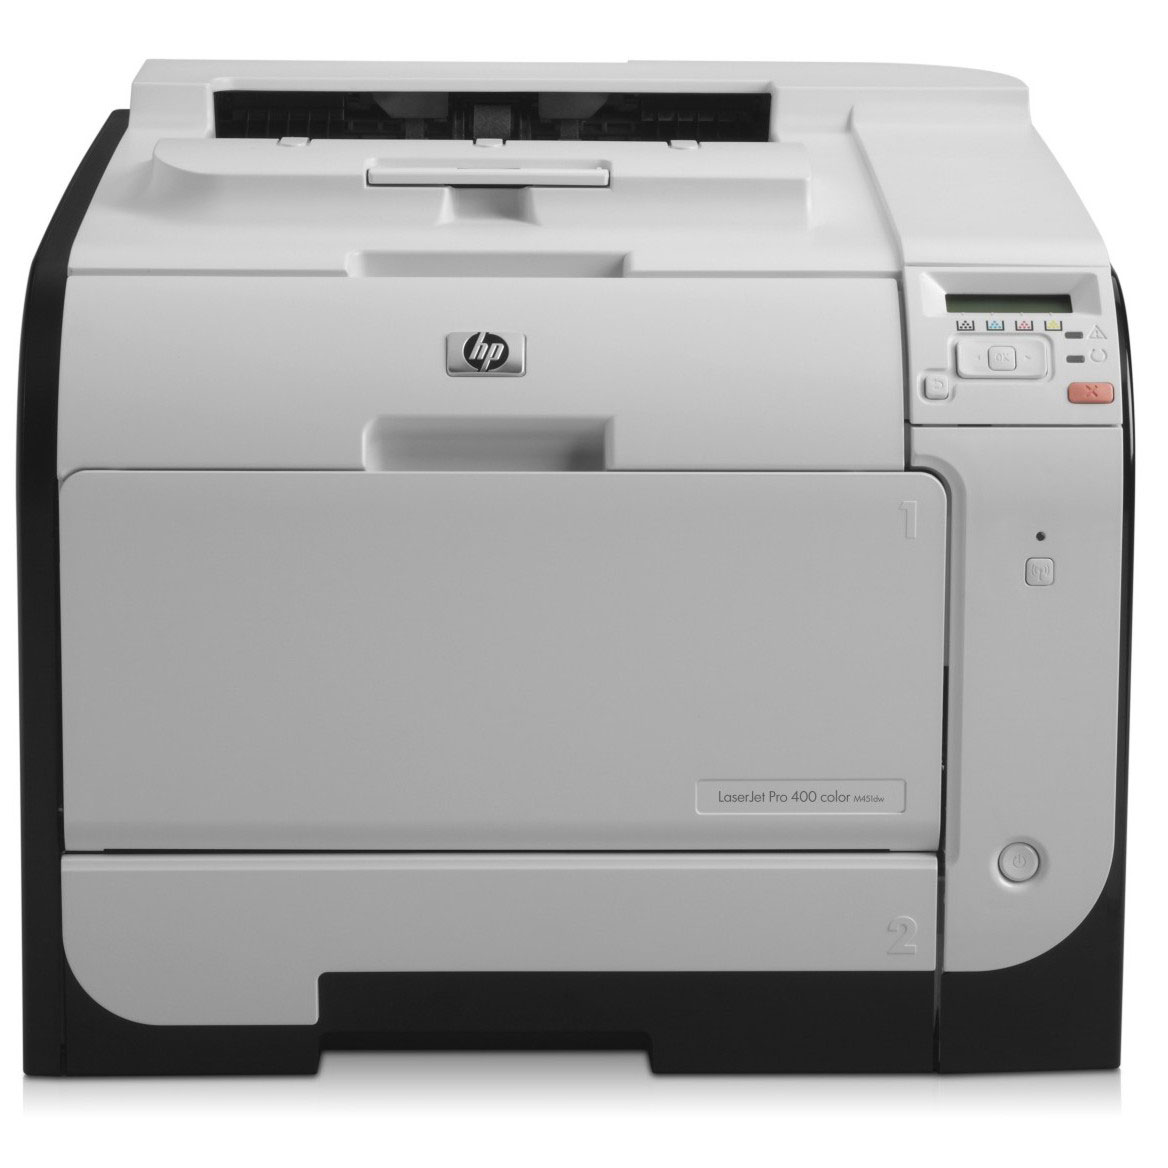 hp laserjet pro 400 m451dw imprimante laser hp sur. Black Bedroom Furniture Sets. Home Design Ideas